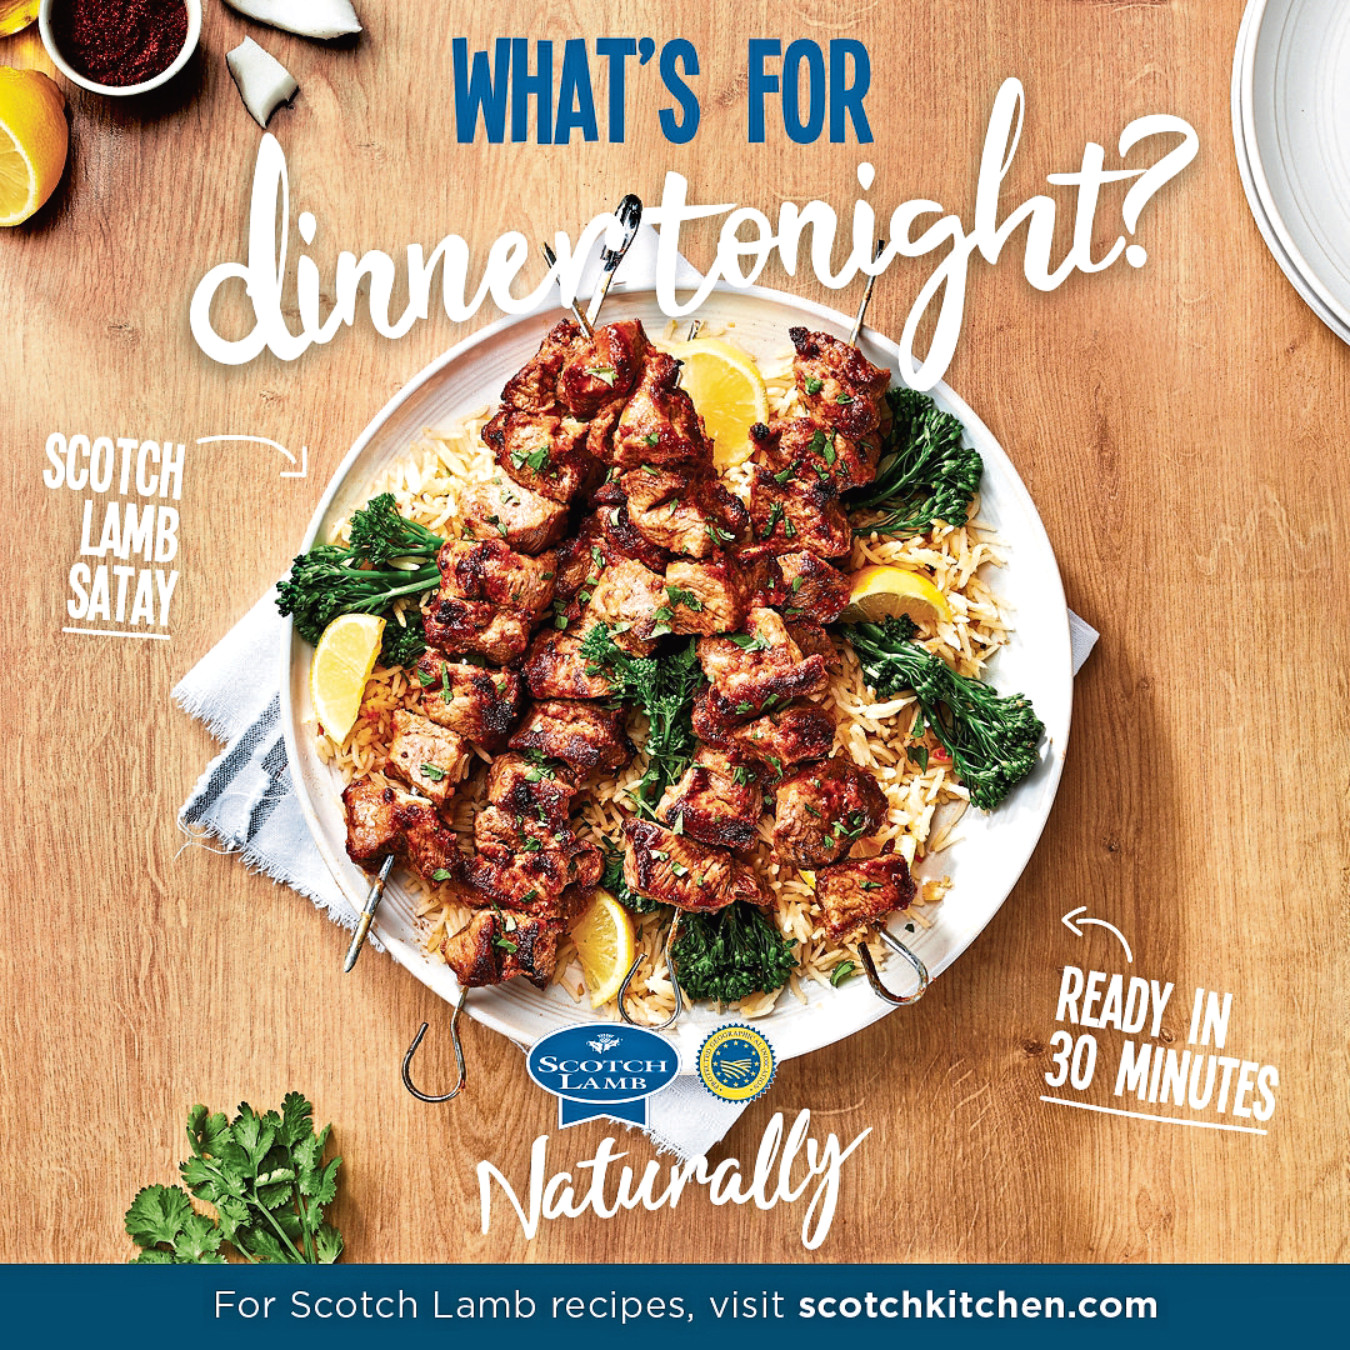 QMS says the campaign will offer inspiration for recipes for quick and easy meals.